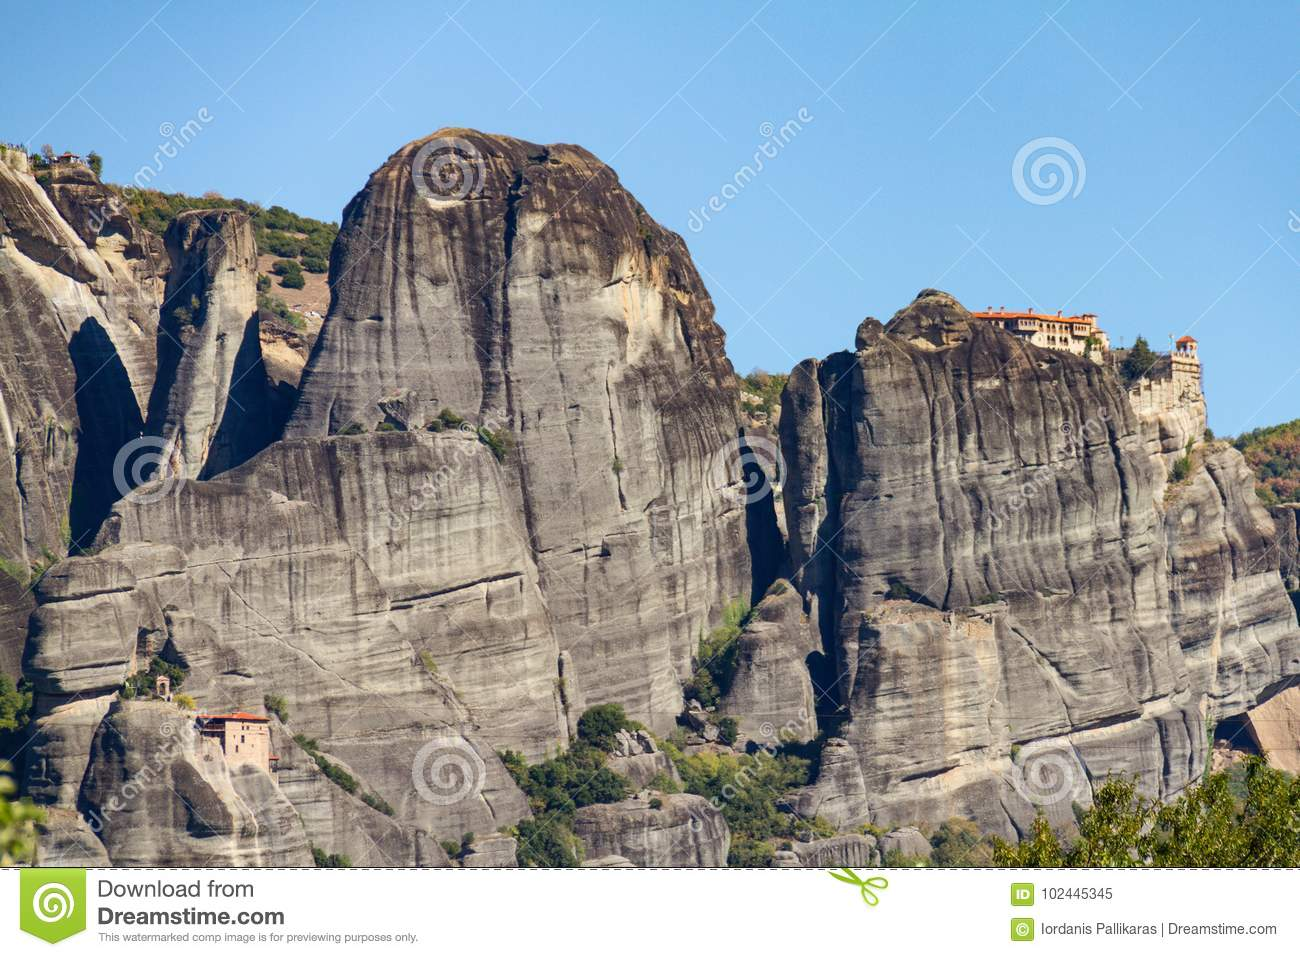 Meteora rock monastery complex in Greece, a UNESCO-listed site